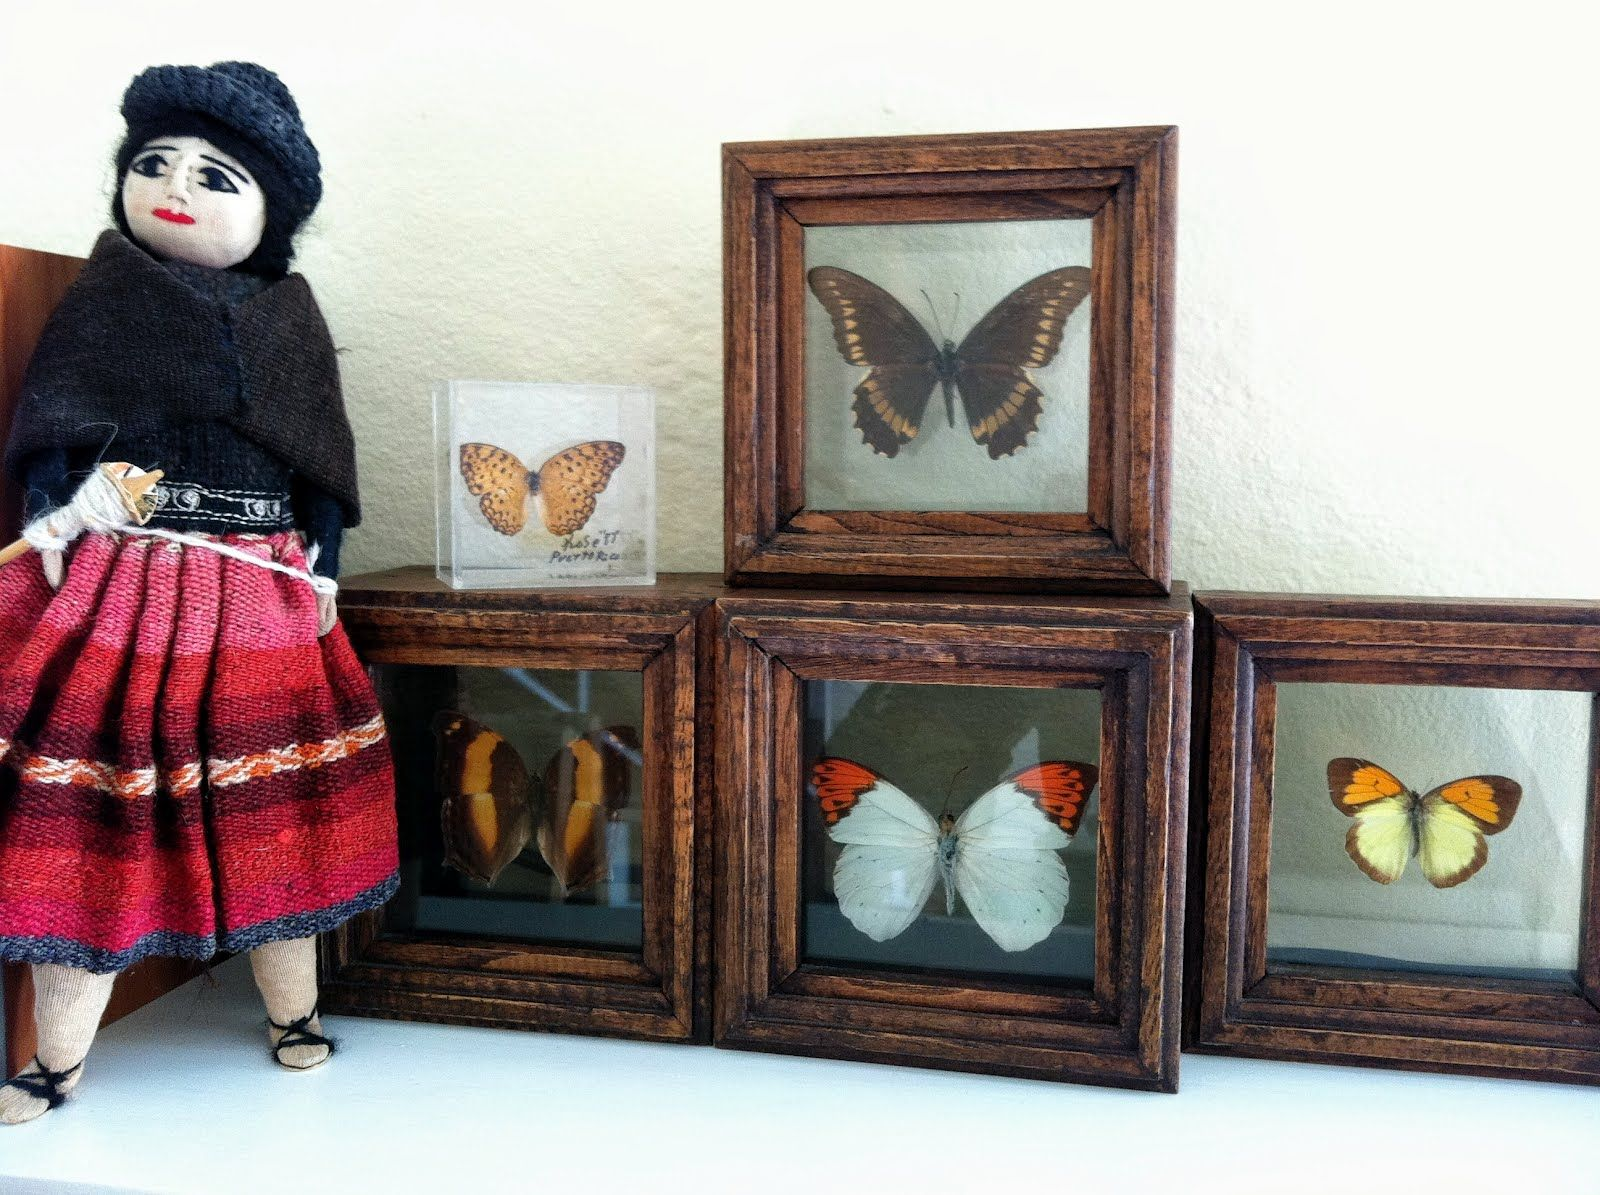 Idea - make miniature butterfly displays (3 D frames with scrapbooking butterflies or stckers?) | Source: Sara's Mini Creations - The Honeycomb Cottage